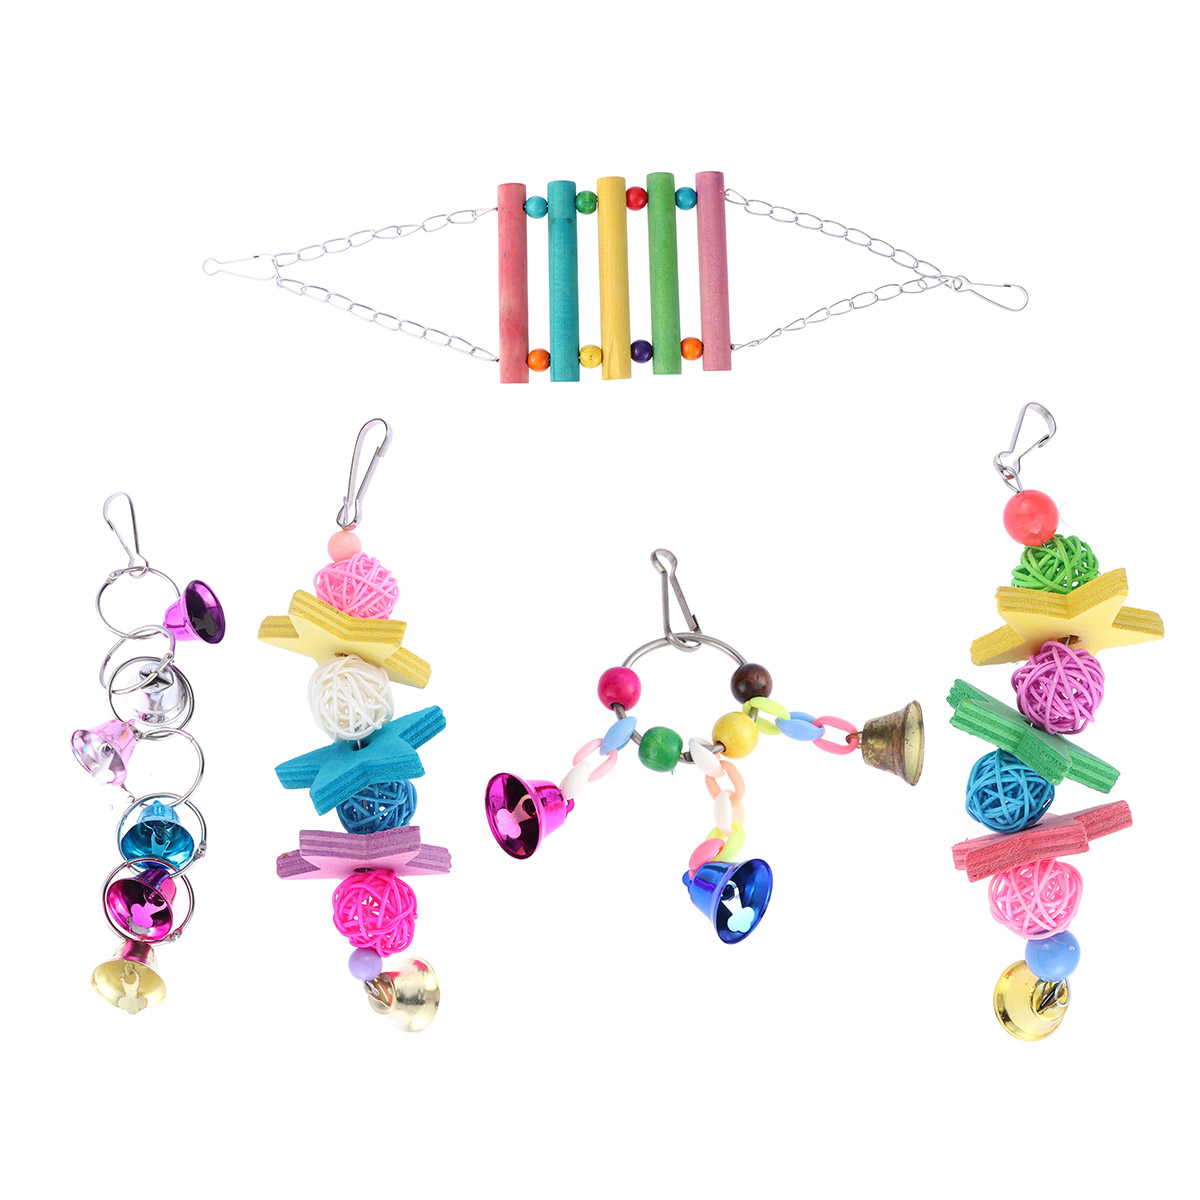 5Pcs Toys Funny Cute Interesting Flexible Colorful Playings Swing for Birds Squirrel Animal Decorating Parrot цена